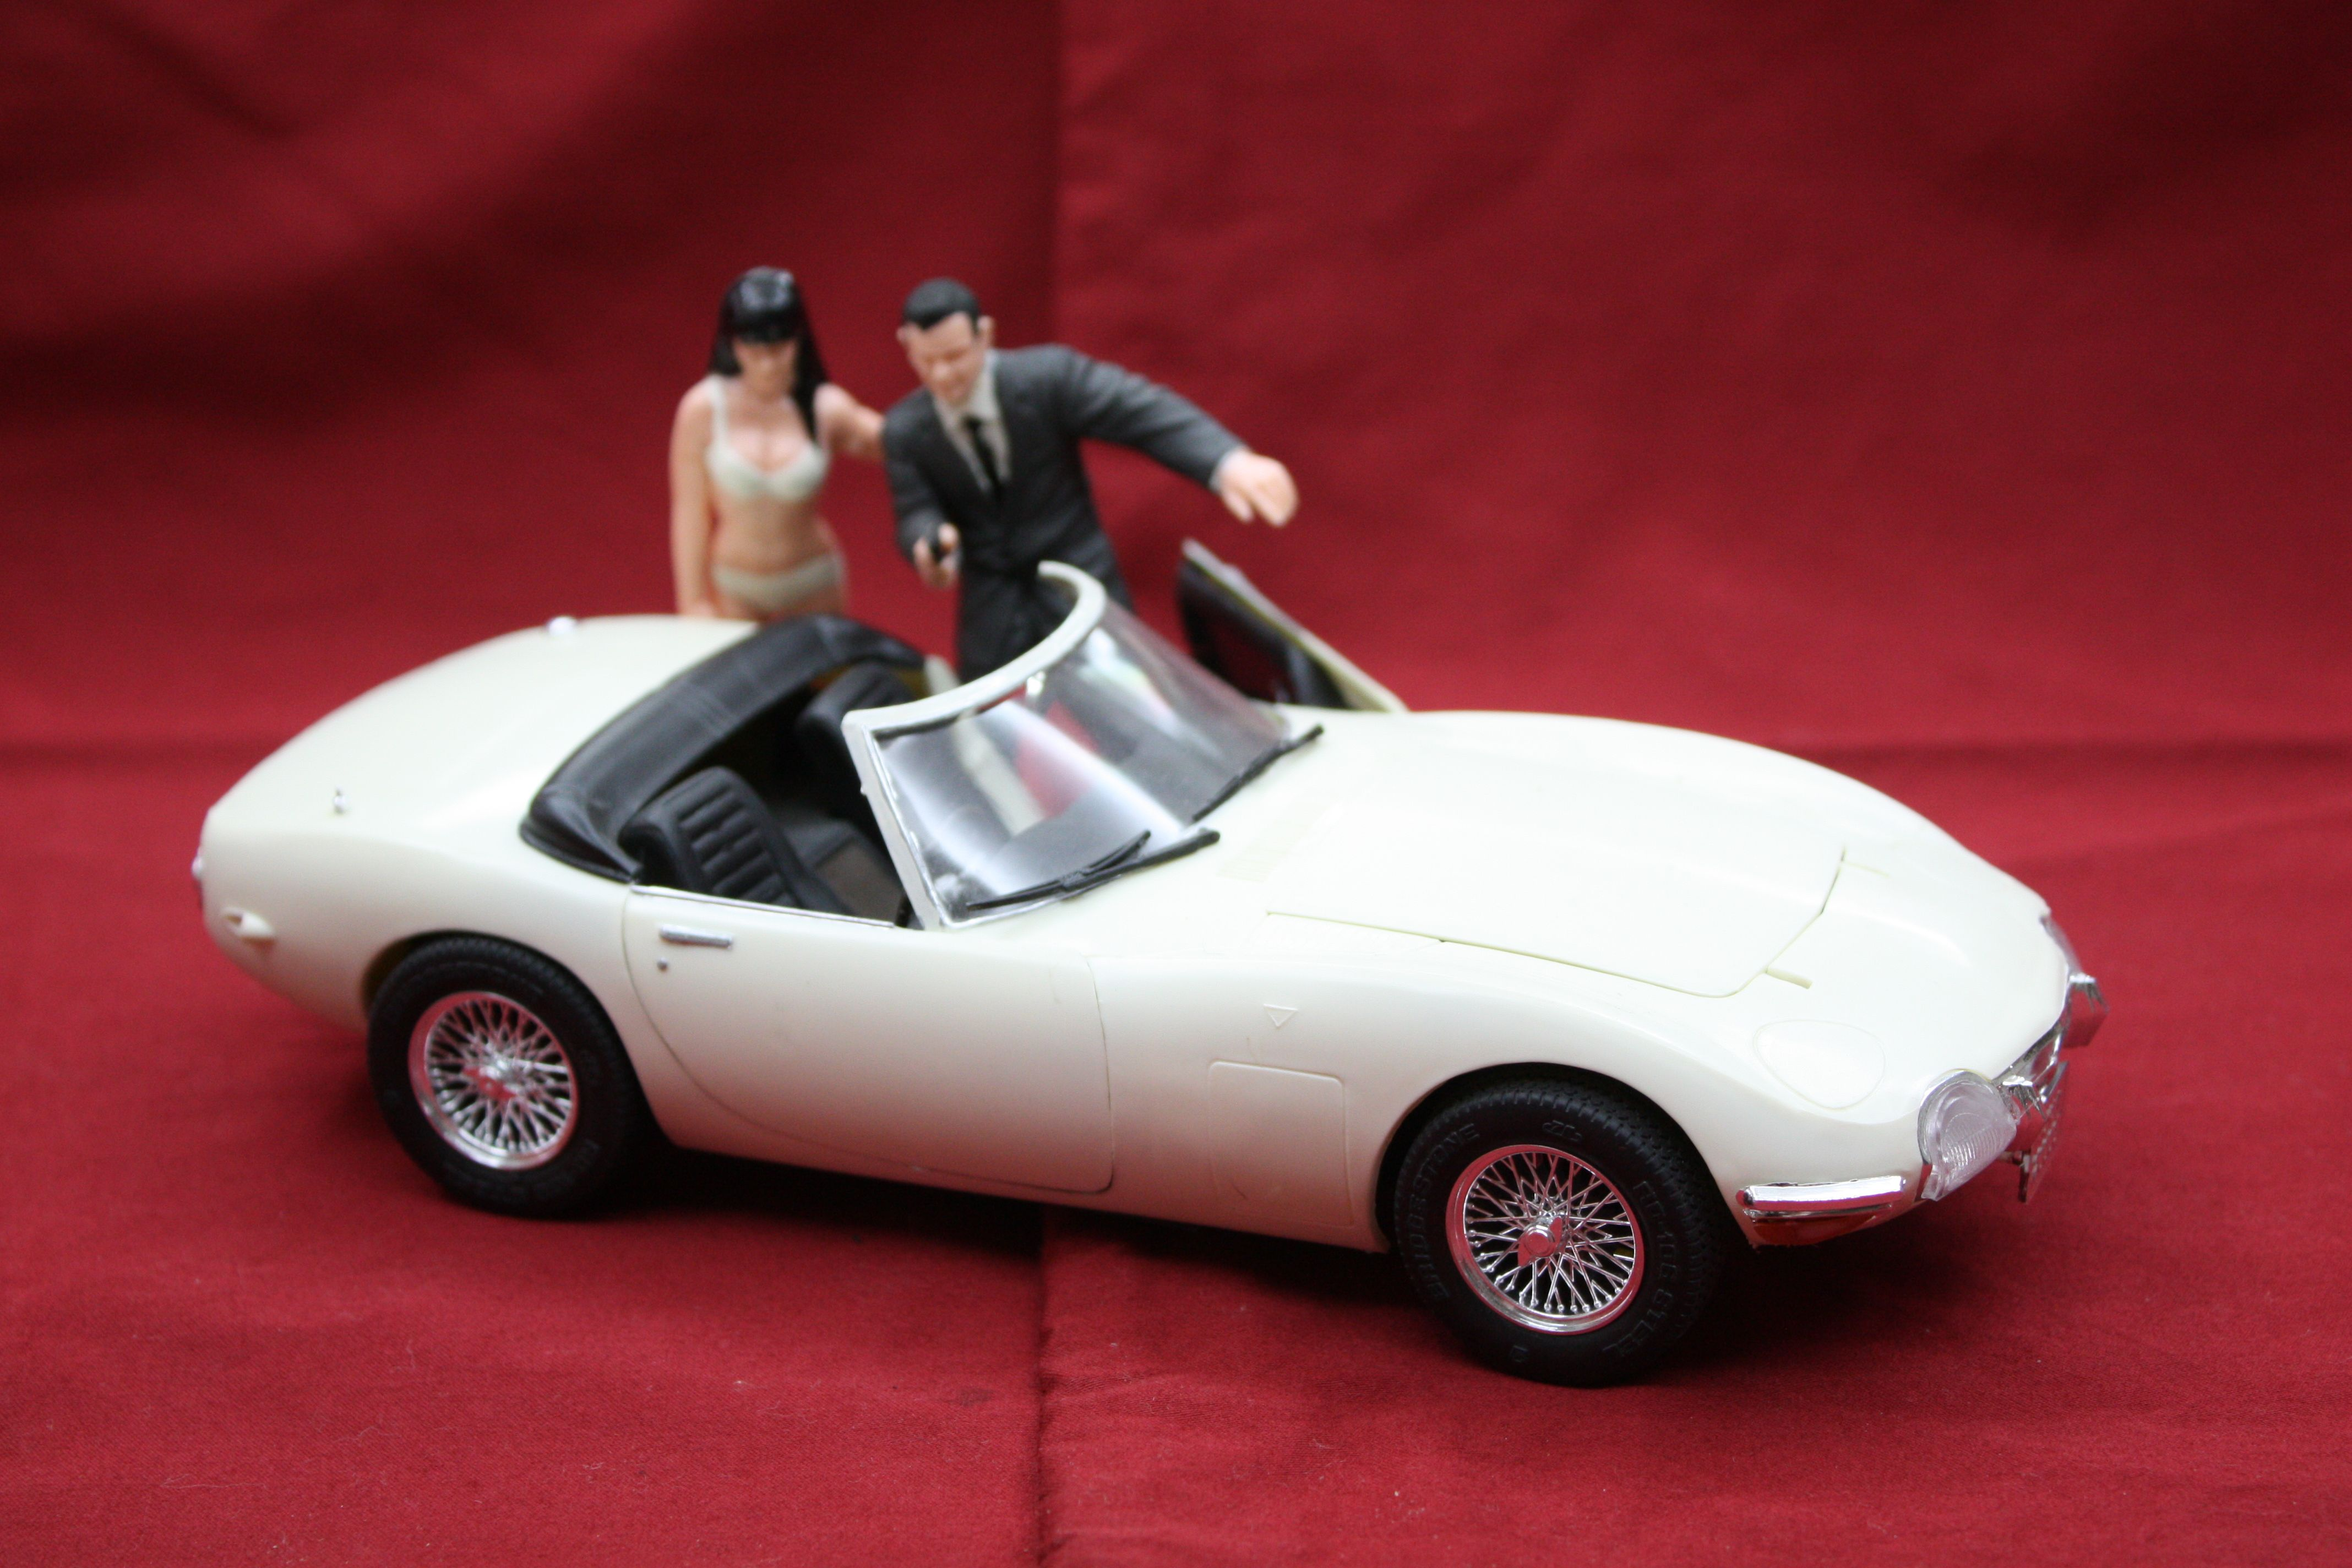 james bond doyasha figure models | james bond model kits | james